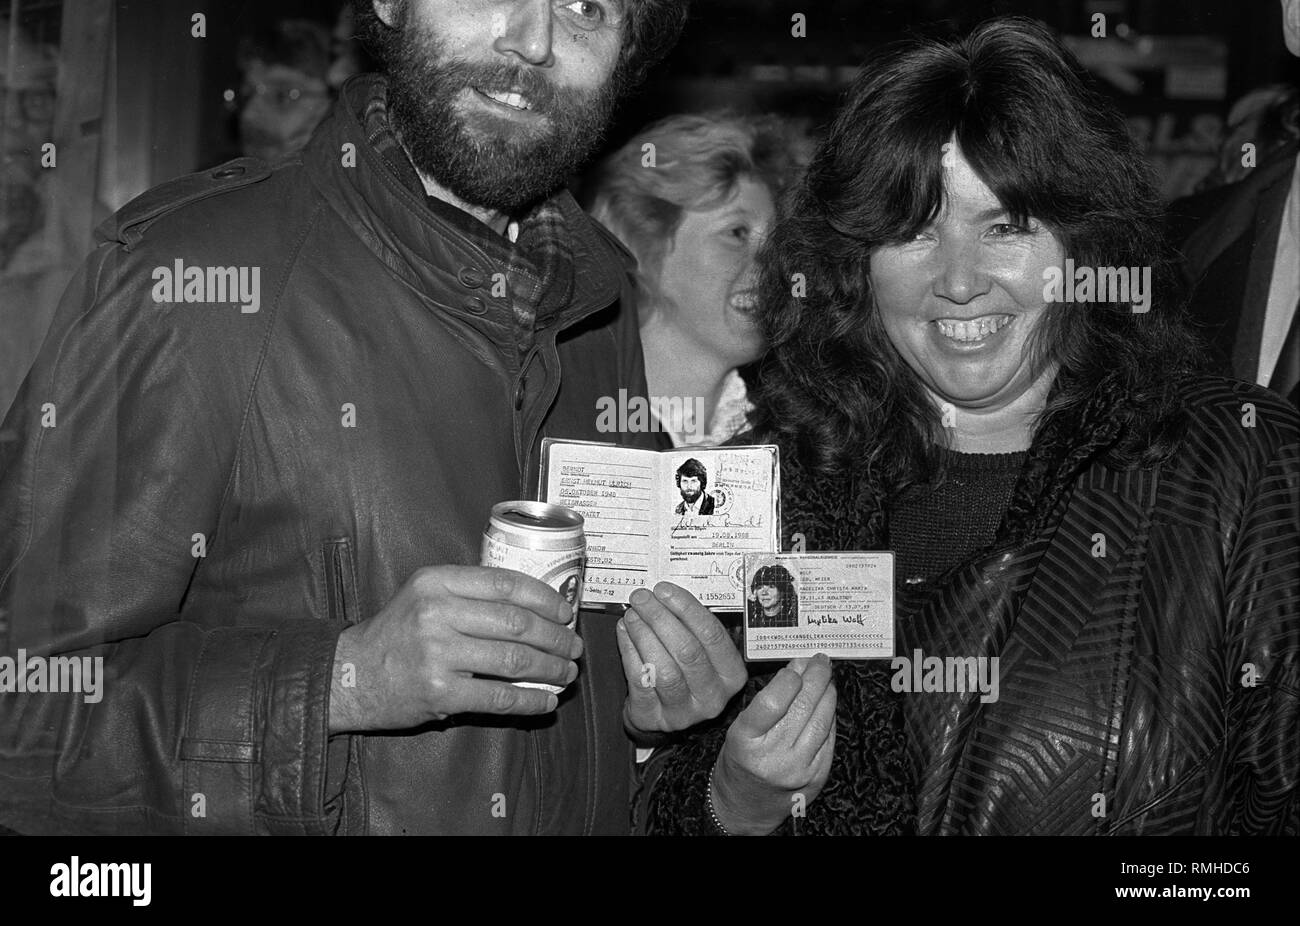 Germany, Berlin, October 8, 1989: East and West Berliner citizens hold their ID cards at Breitscheidplatz on the night of the fall of the Berlin Wall. - Stock Image